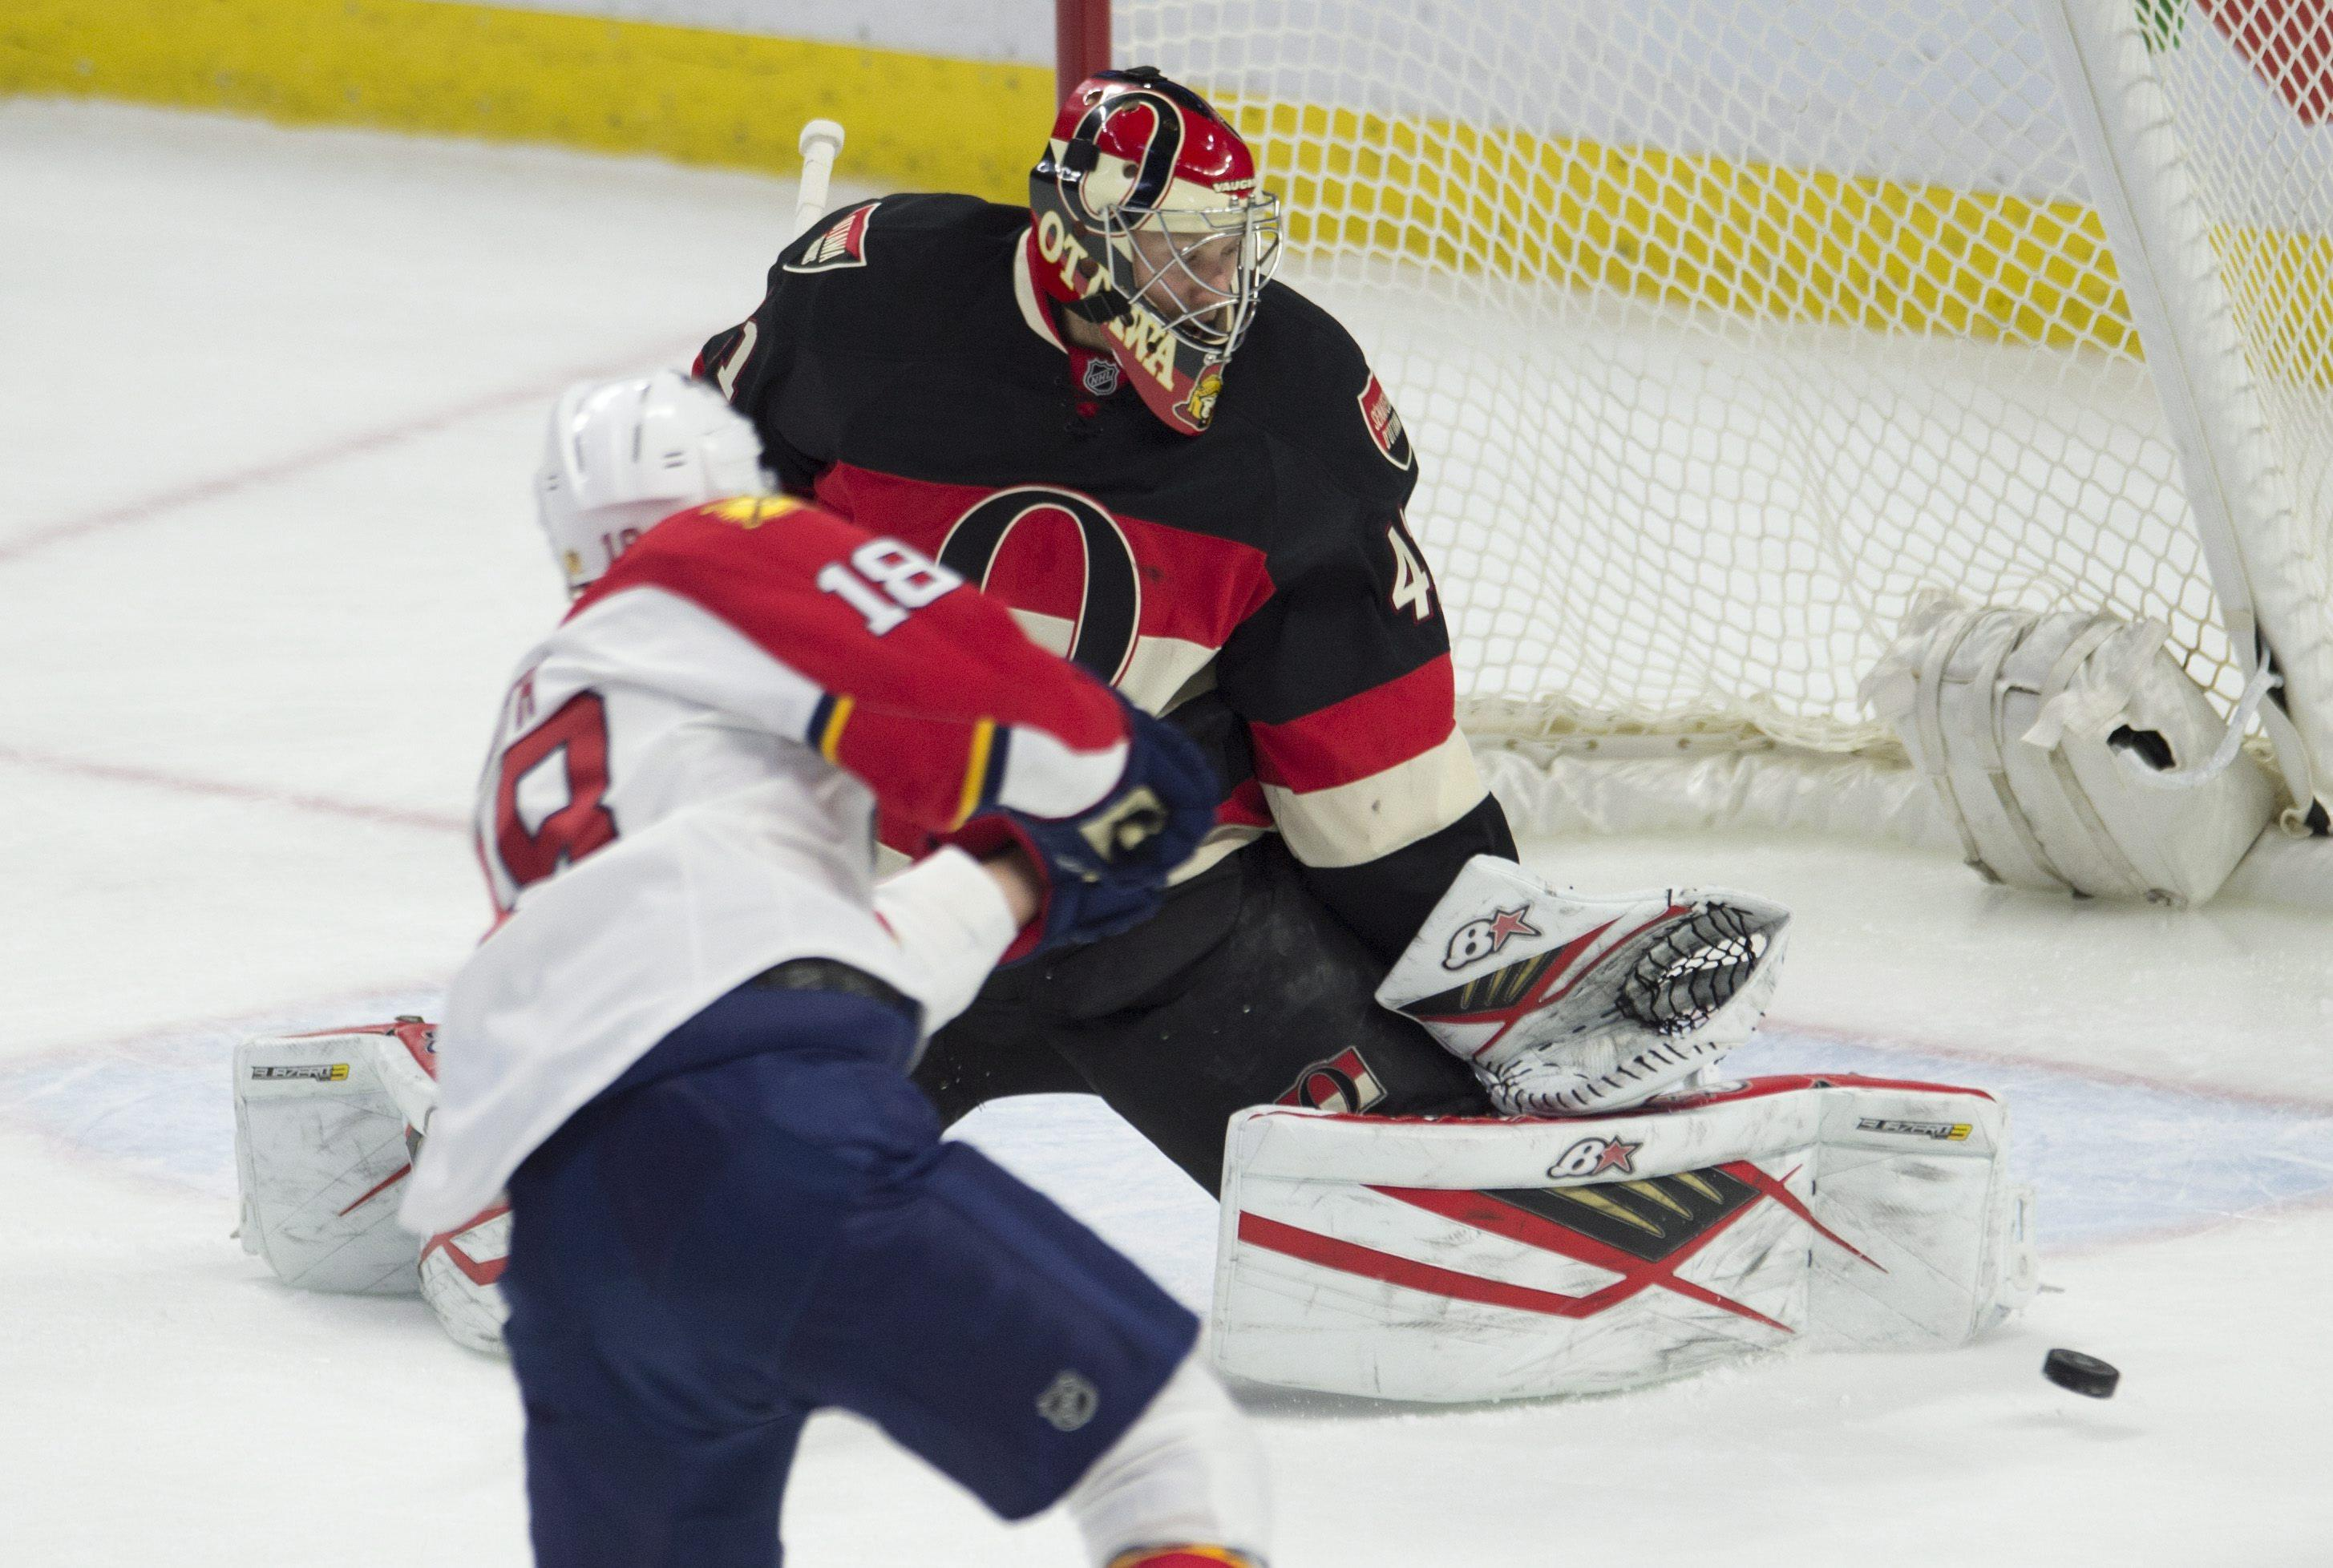 Panthers_senators_hockey